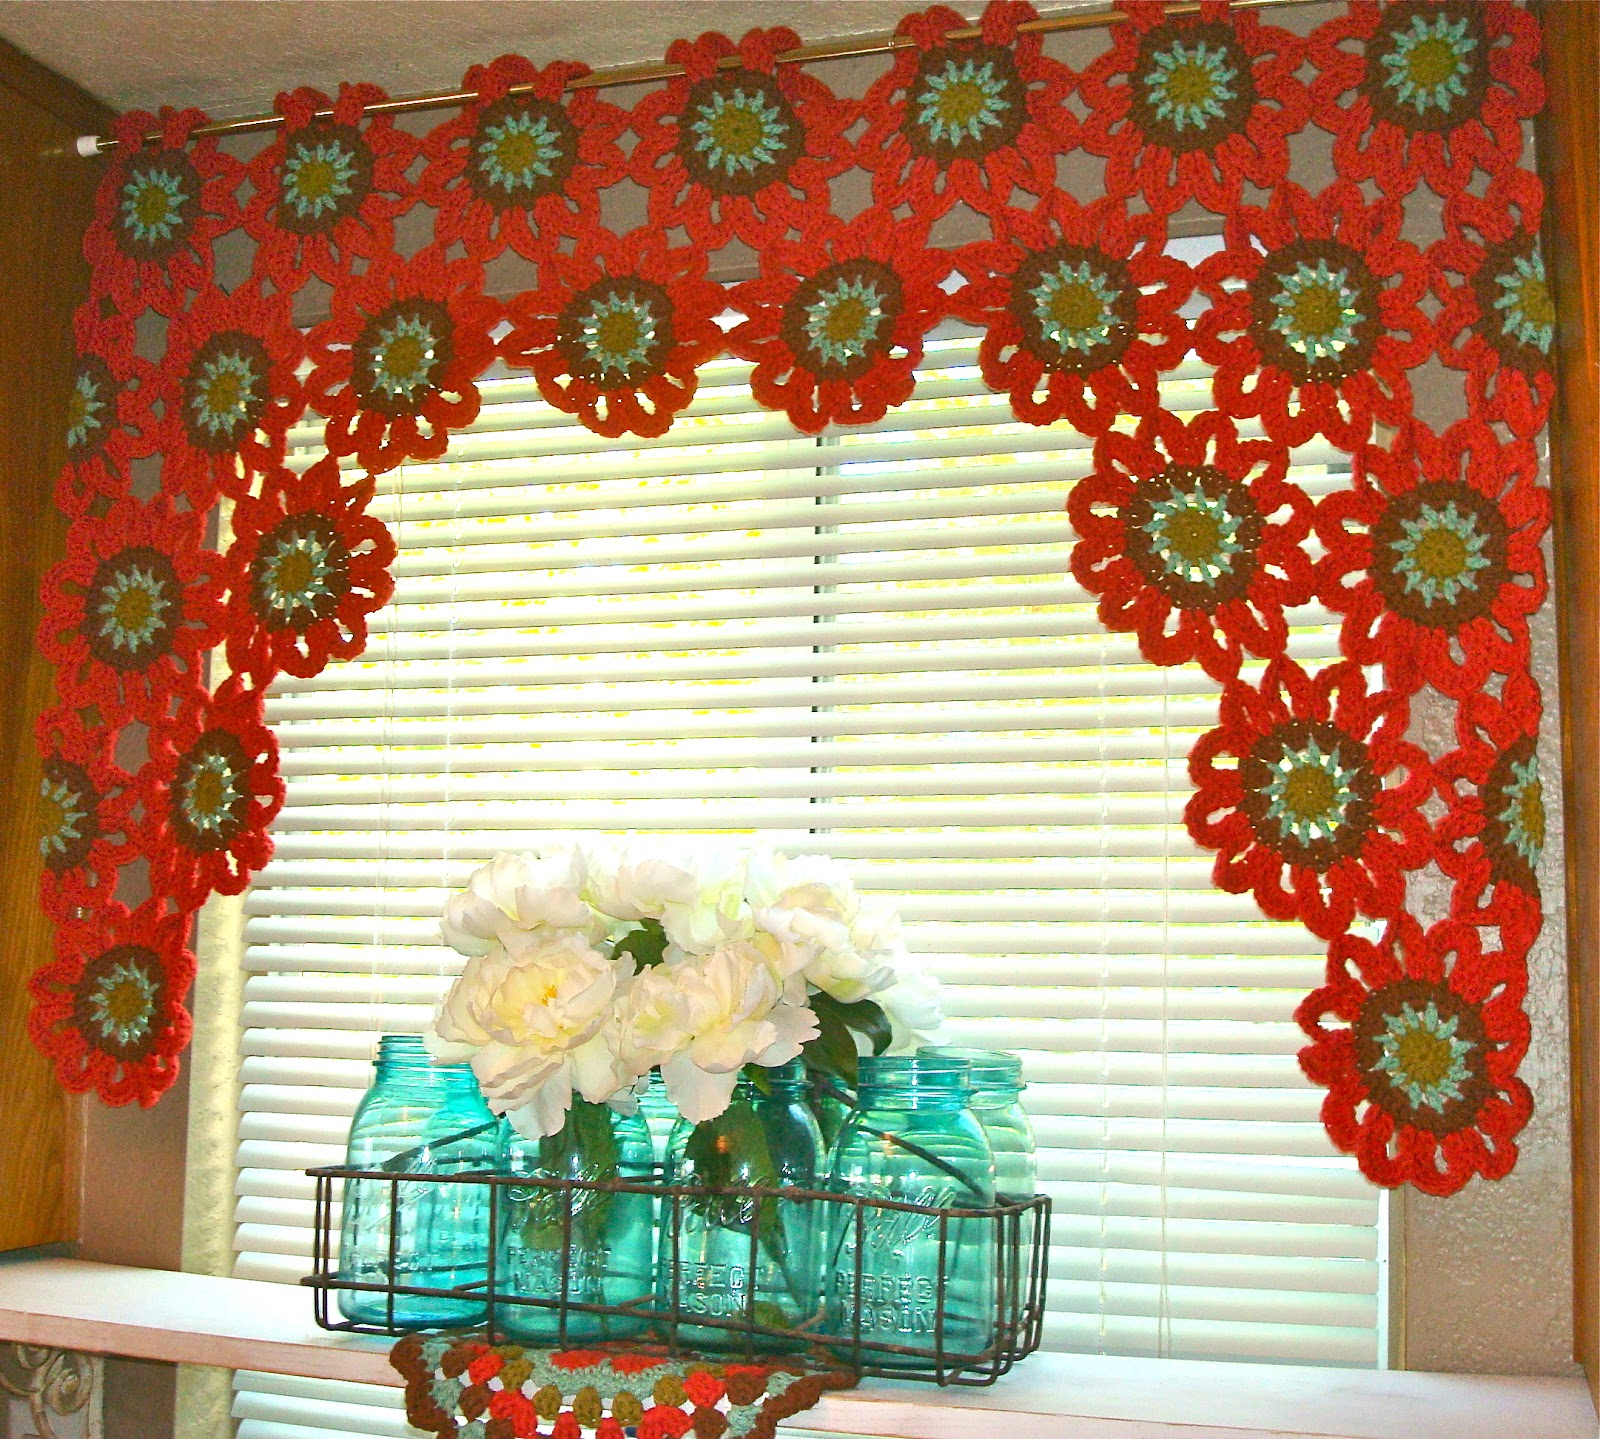 19 cool patterns for crochet curtains guide patterns - Cortinas para cocina ...